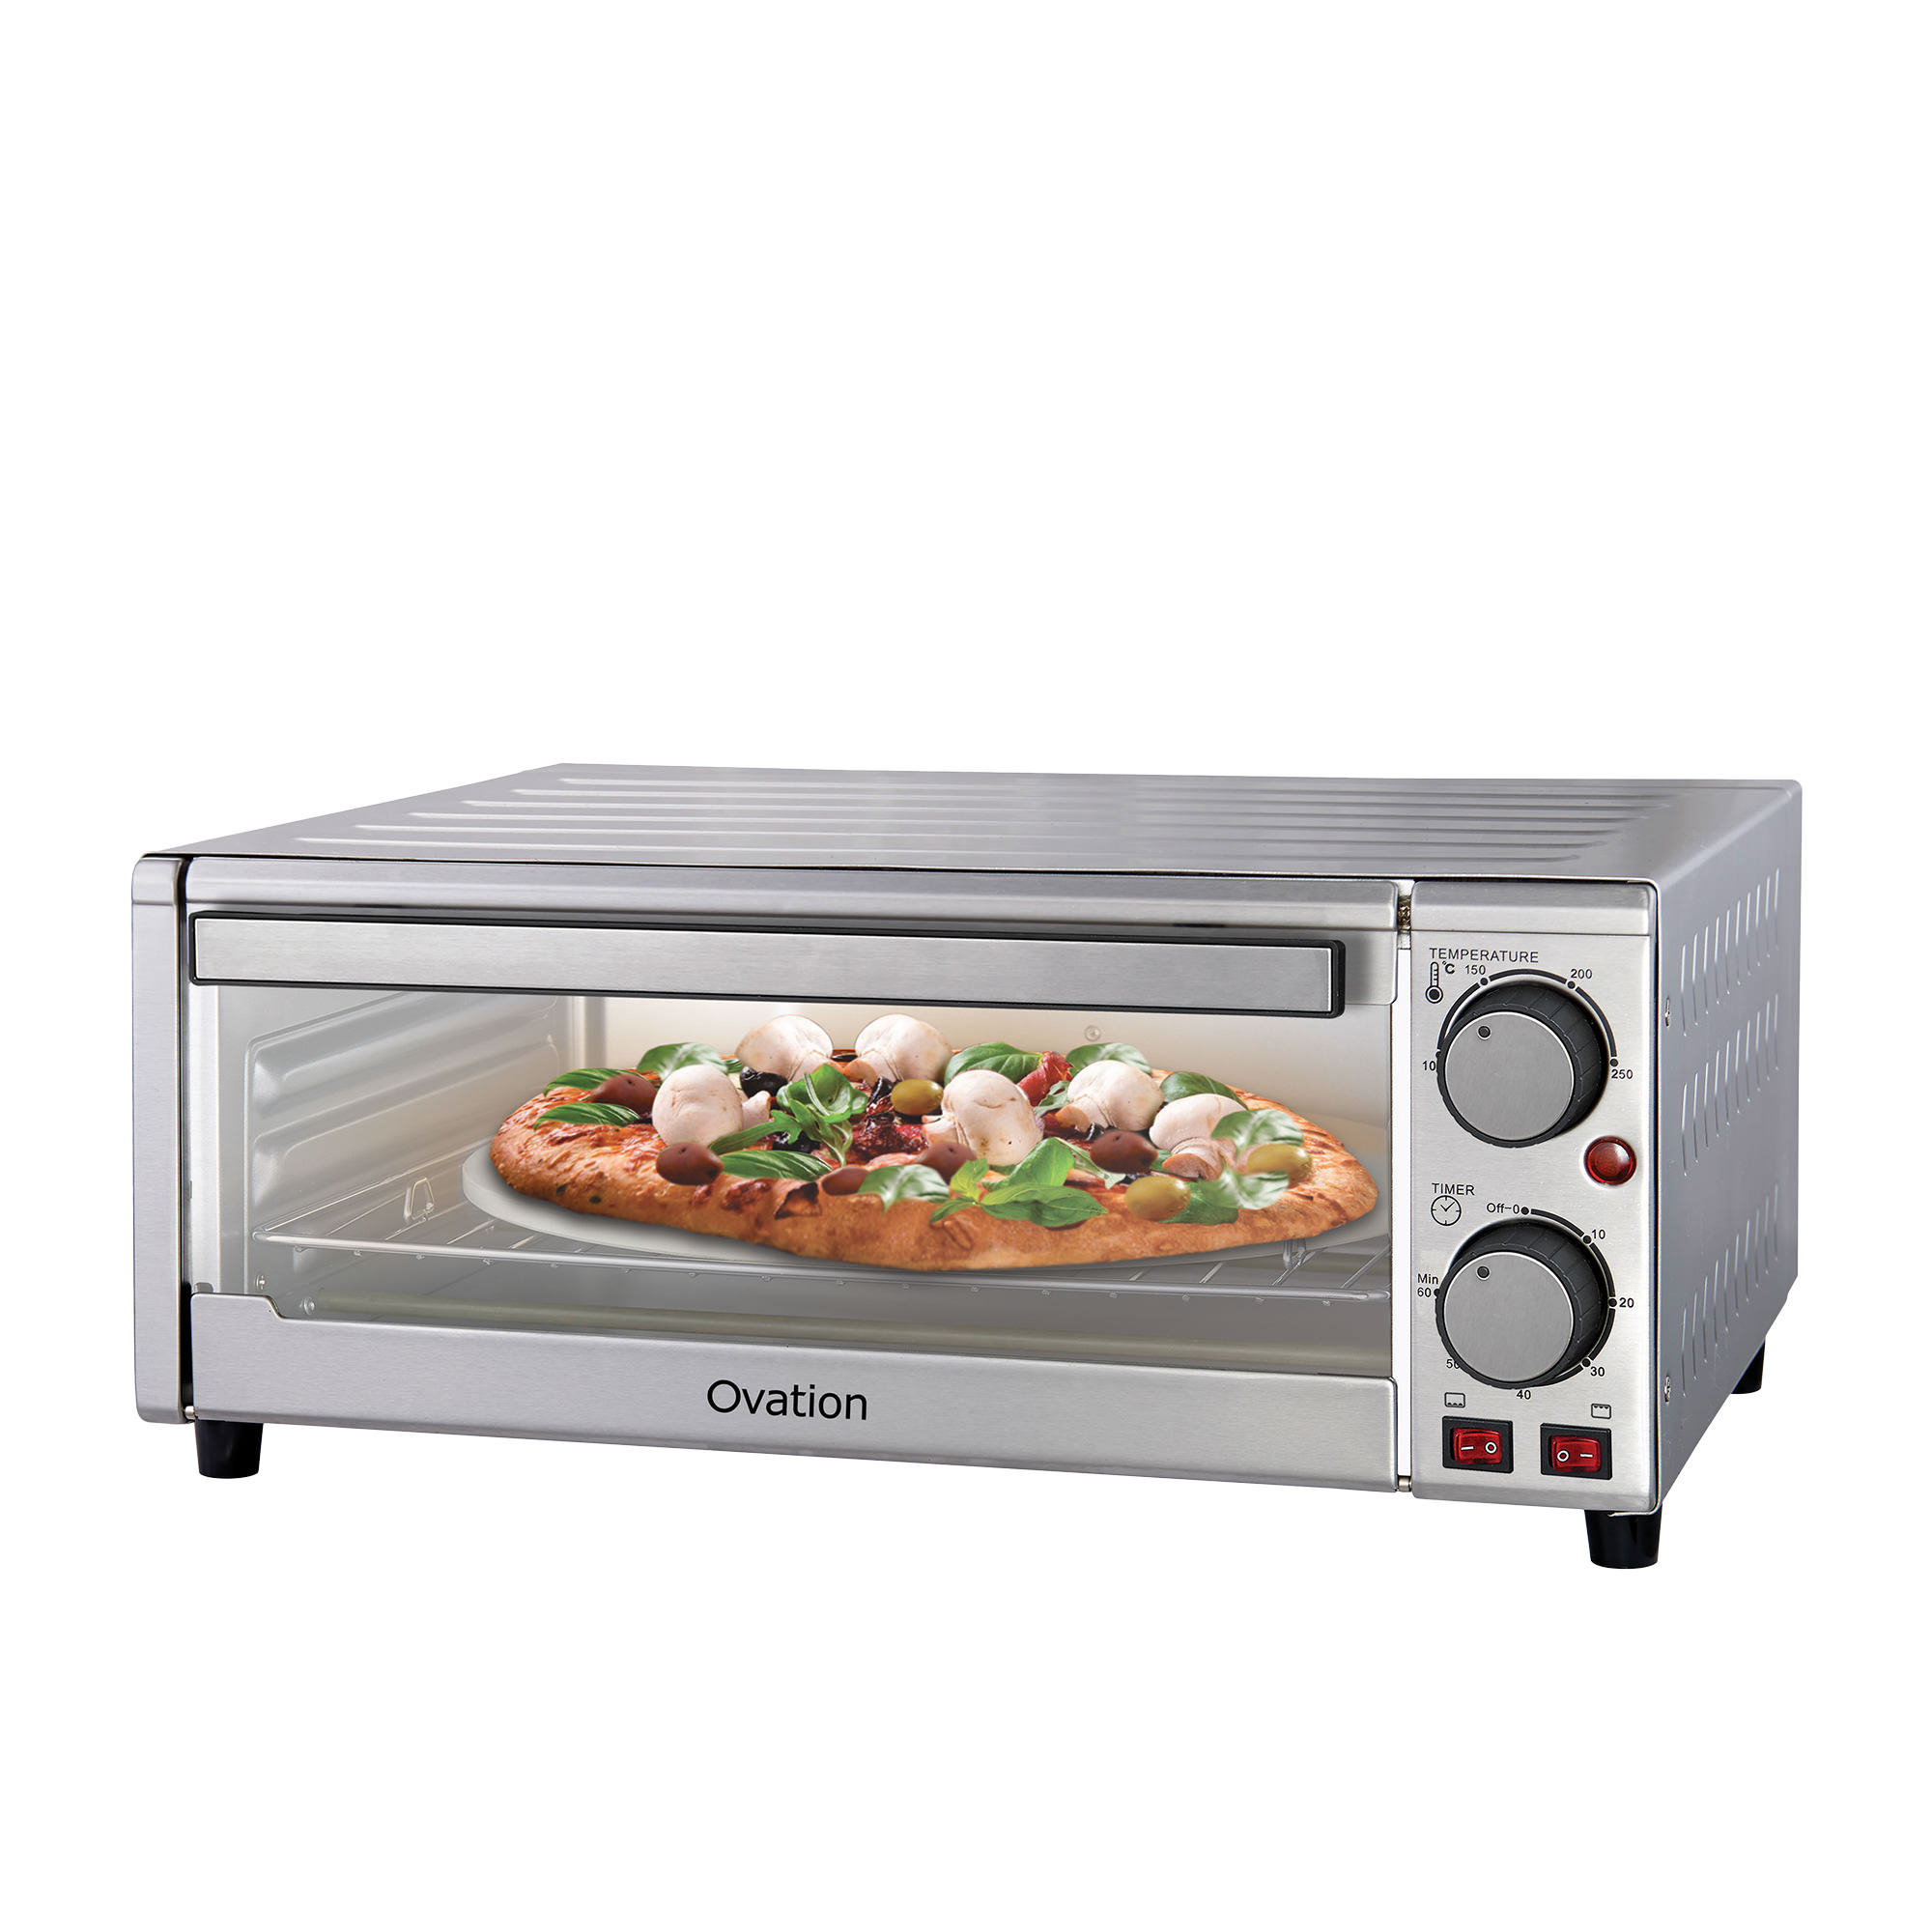 Ovation Pizza Maker Stainless Steel